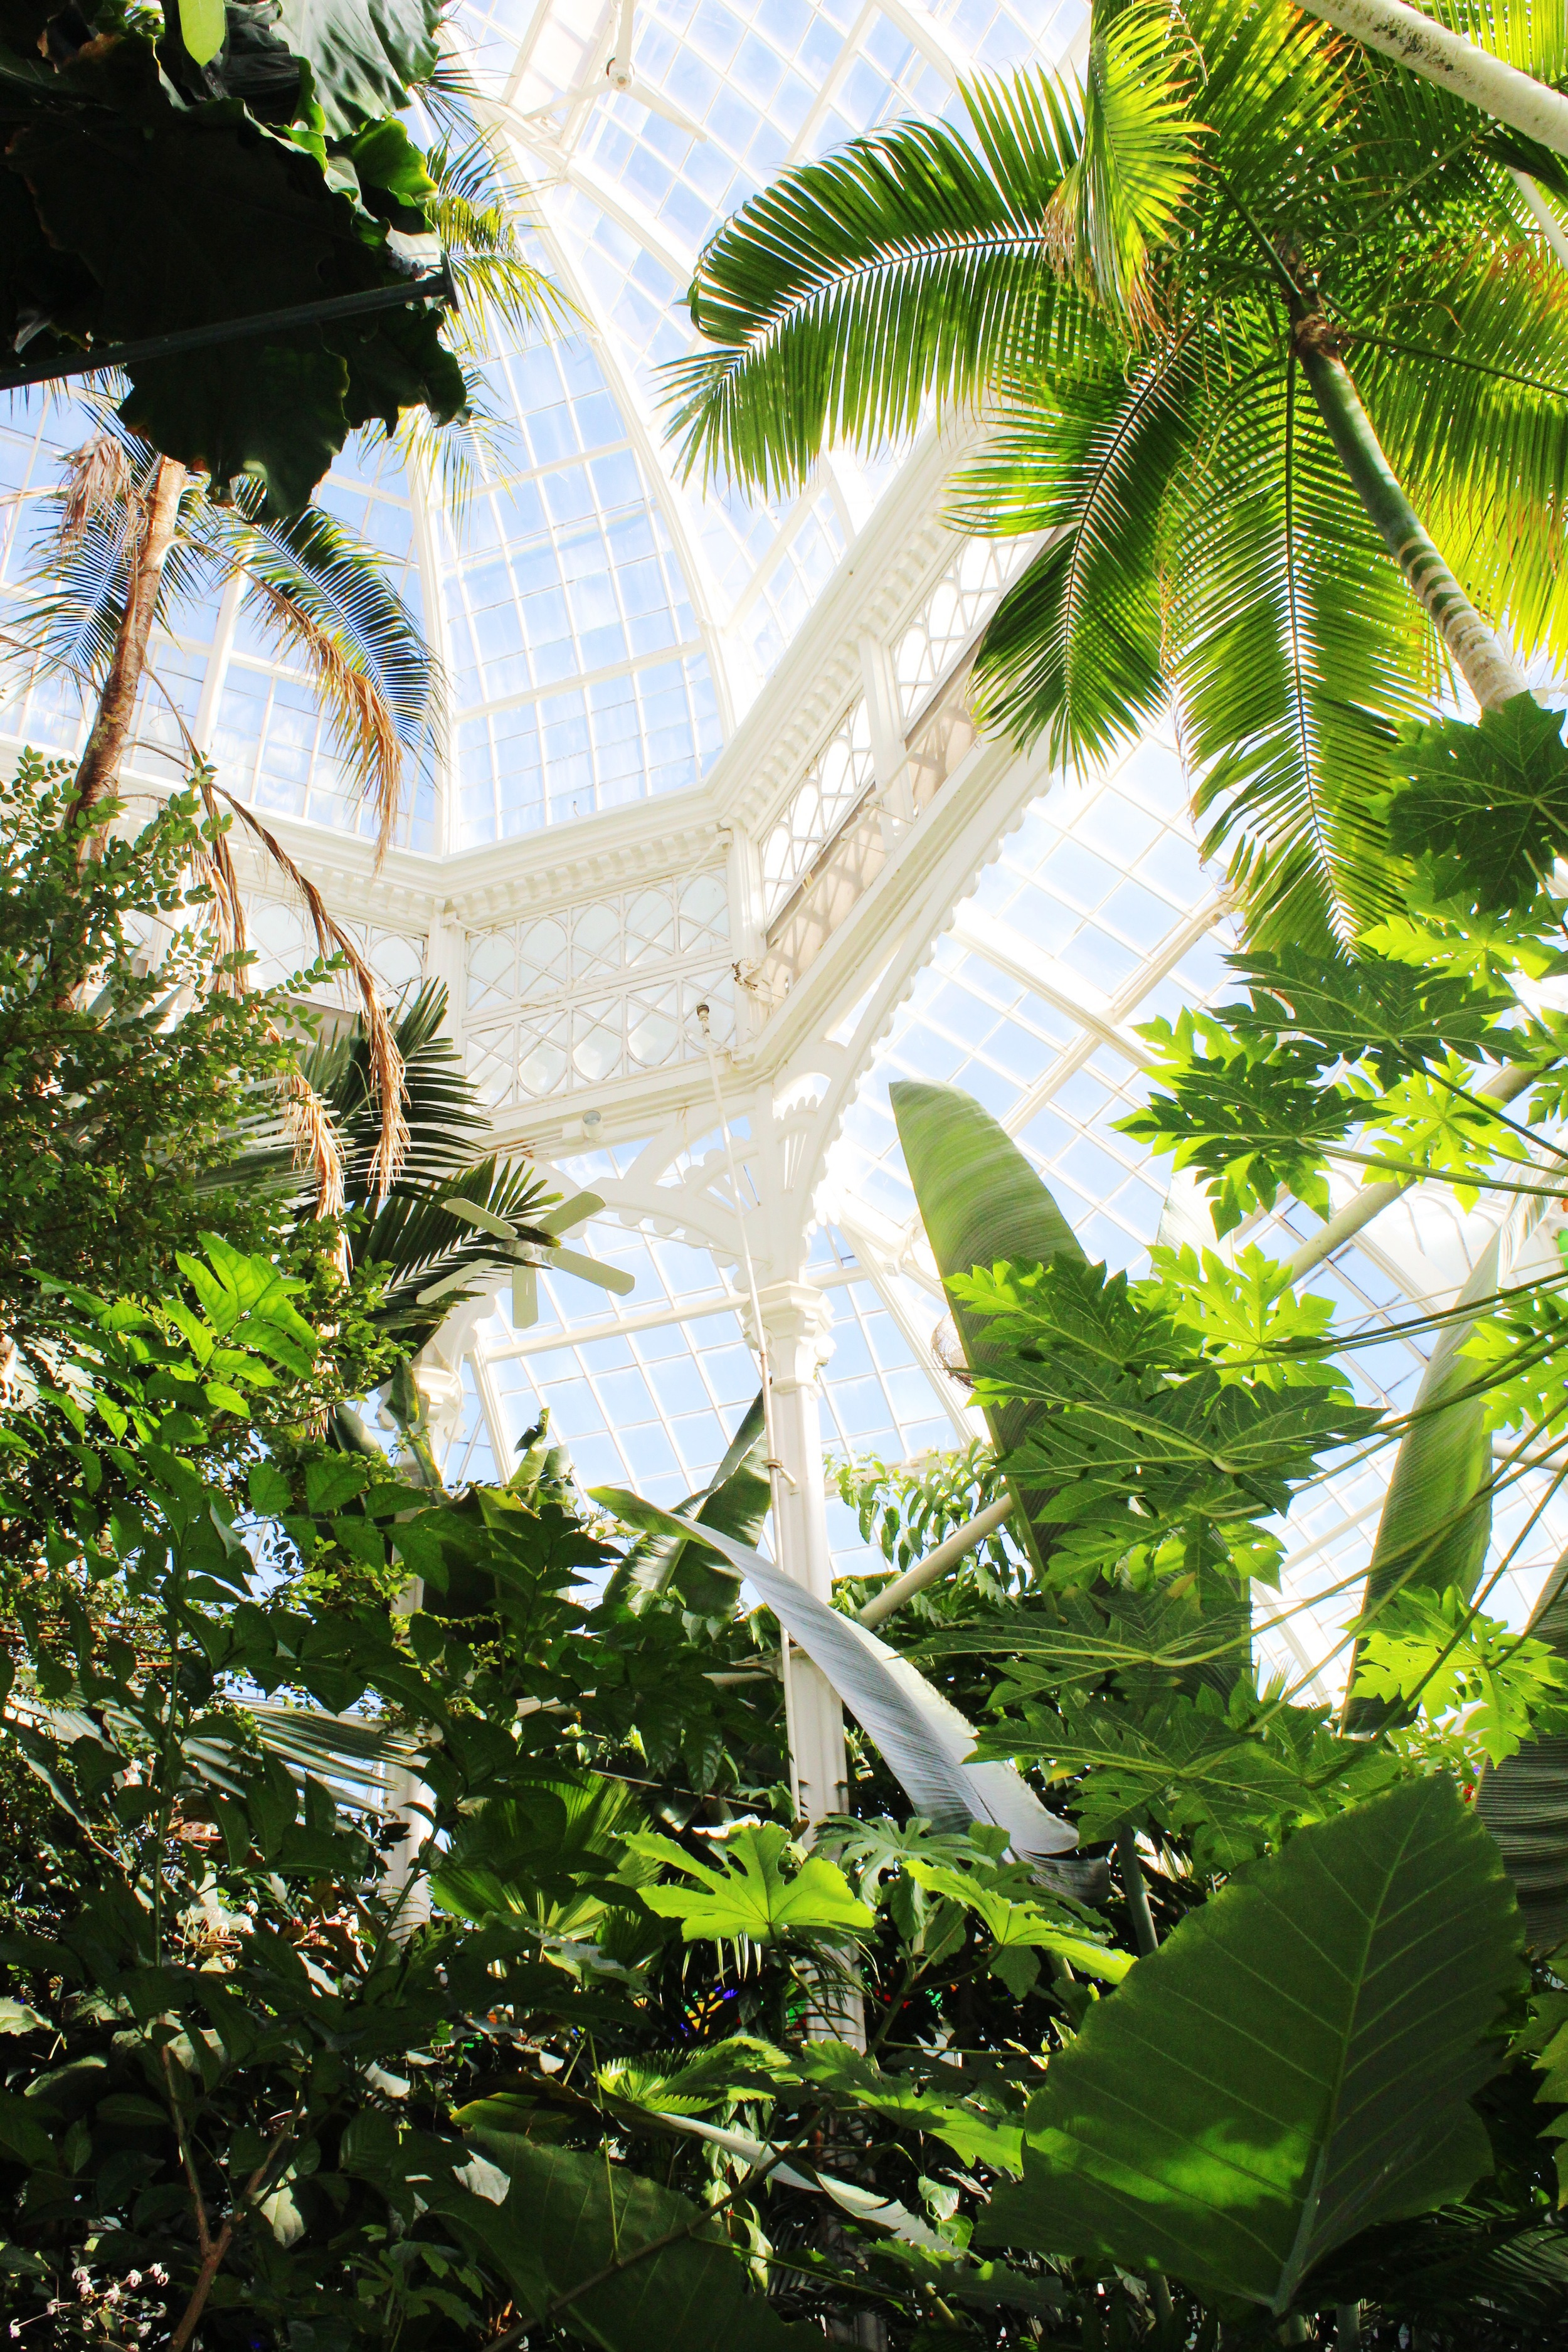 Places: San Francisco Conservatory of Flowers | Sundays and Somedays